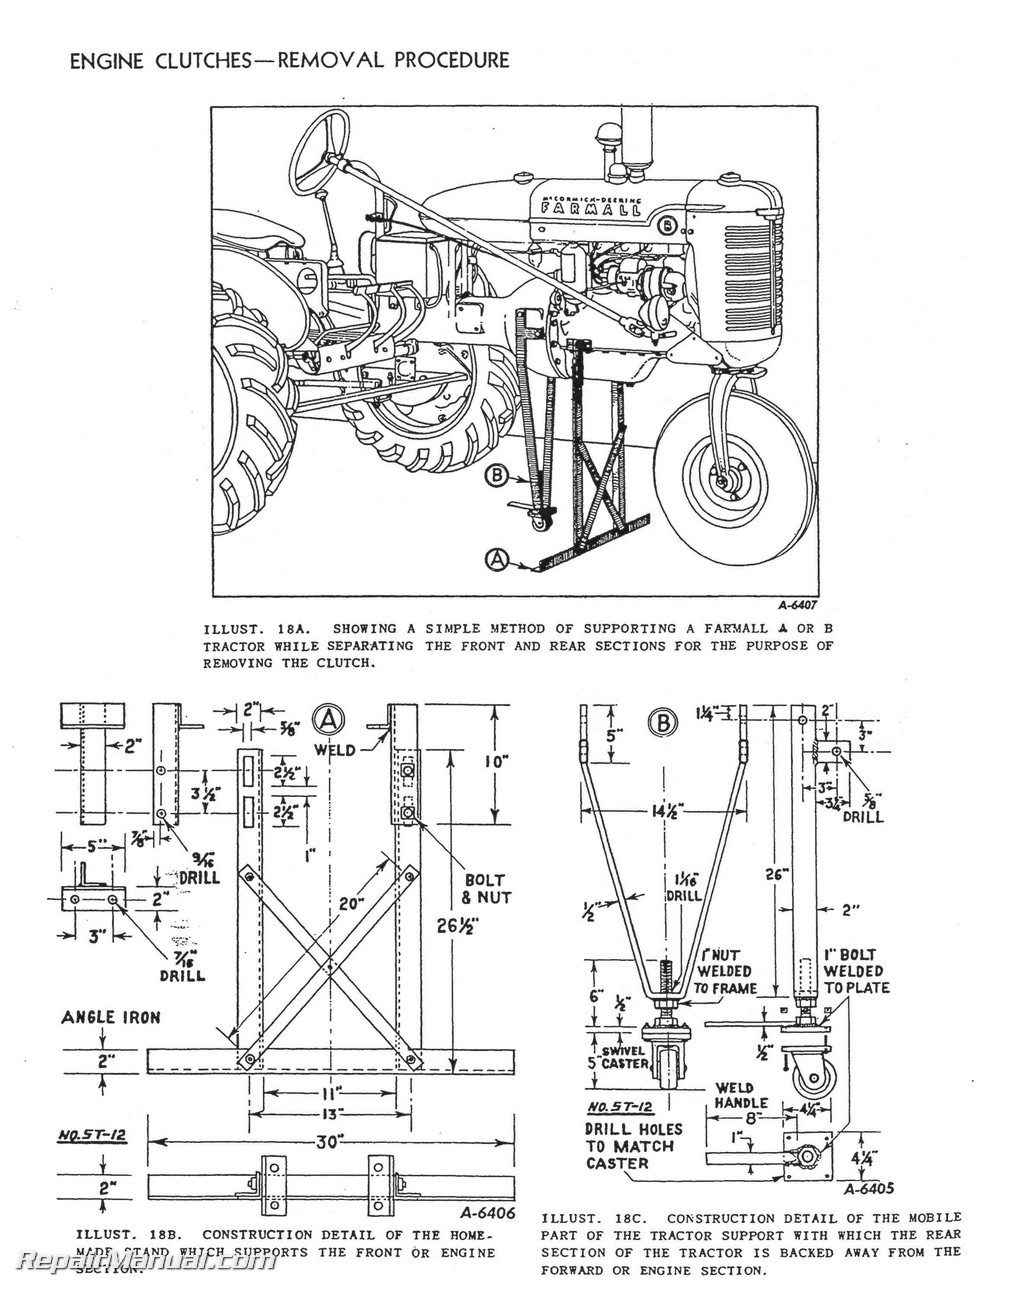 farmall super h clutch diagram international harvester farmall tractor engine clutch ...